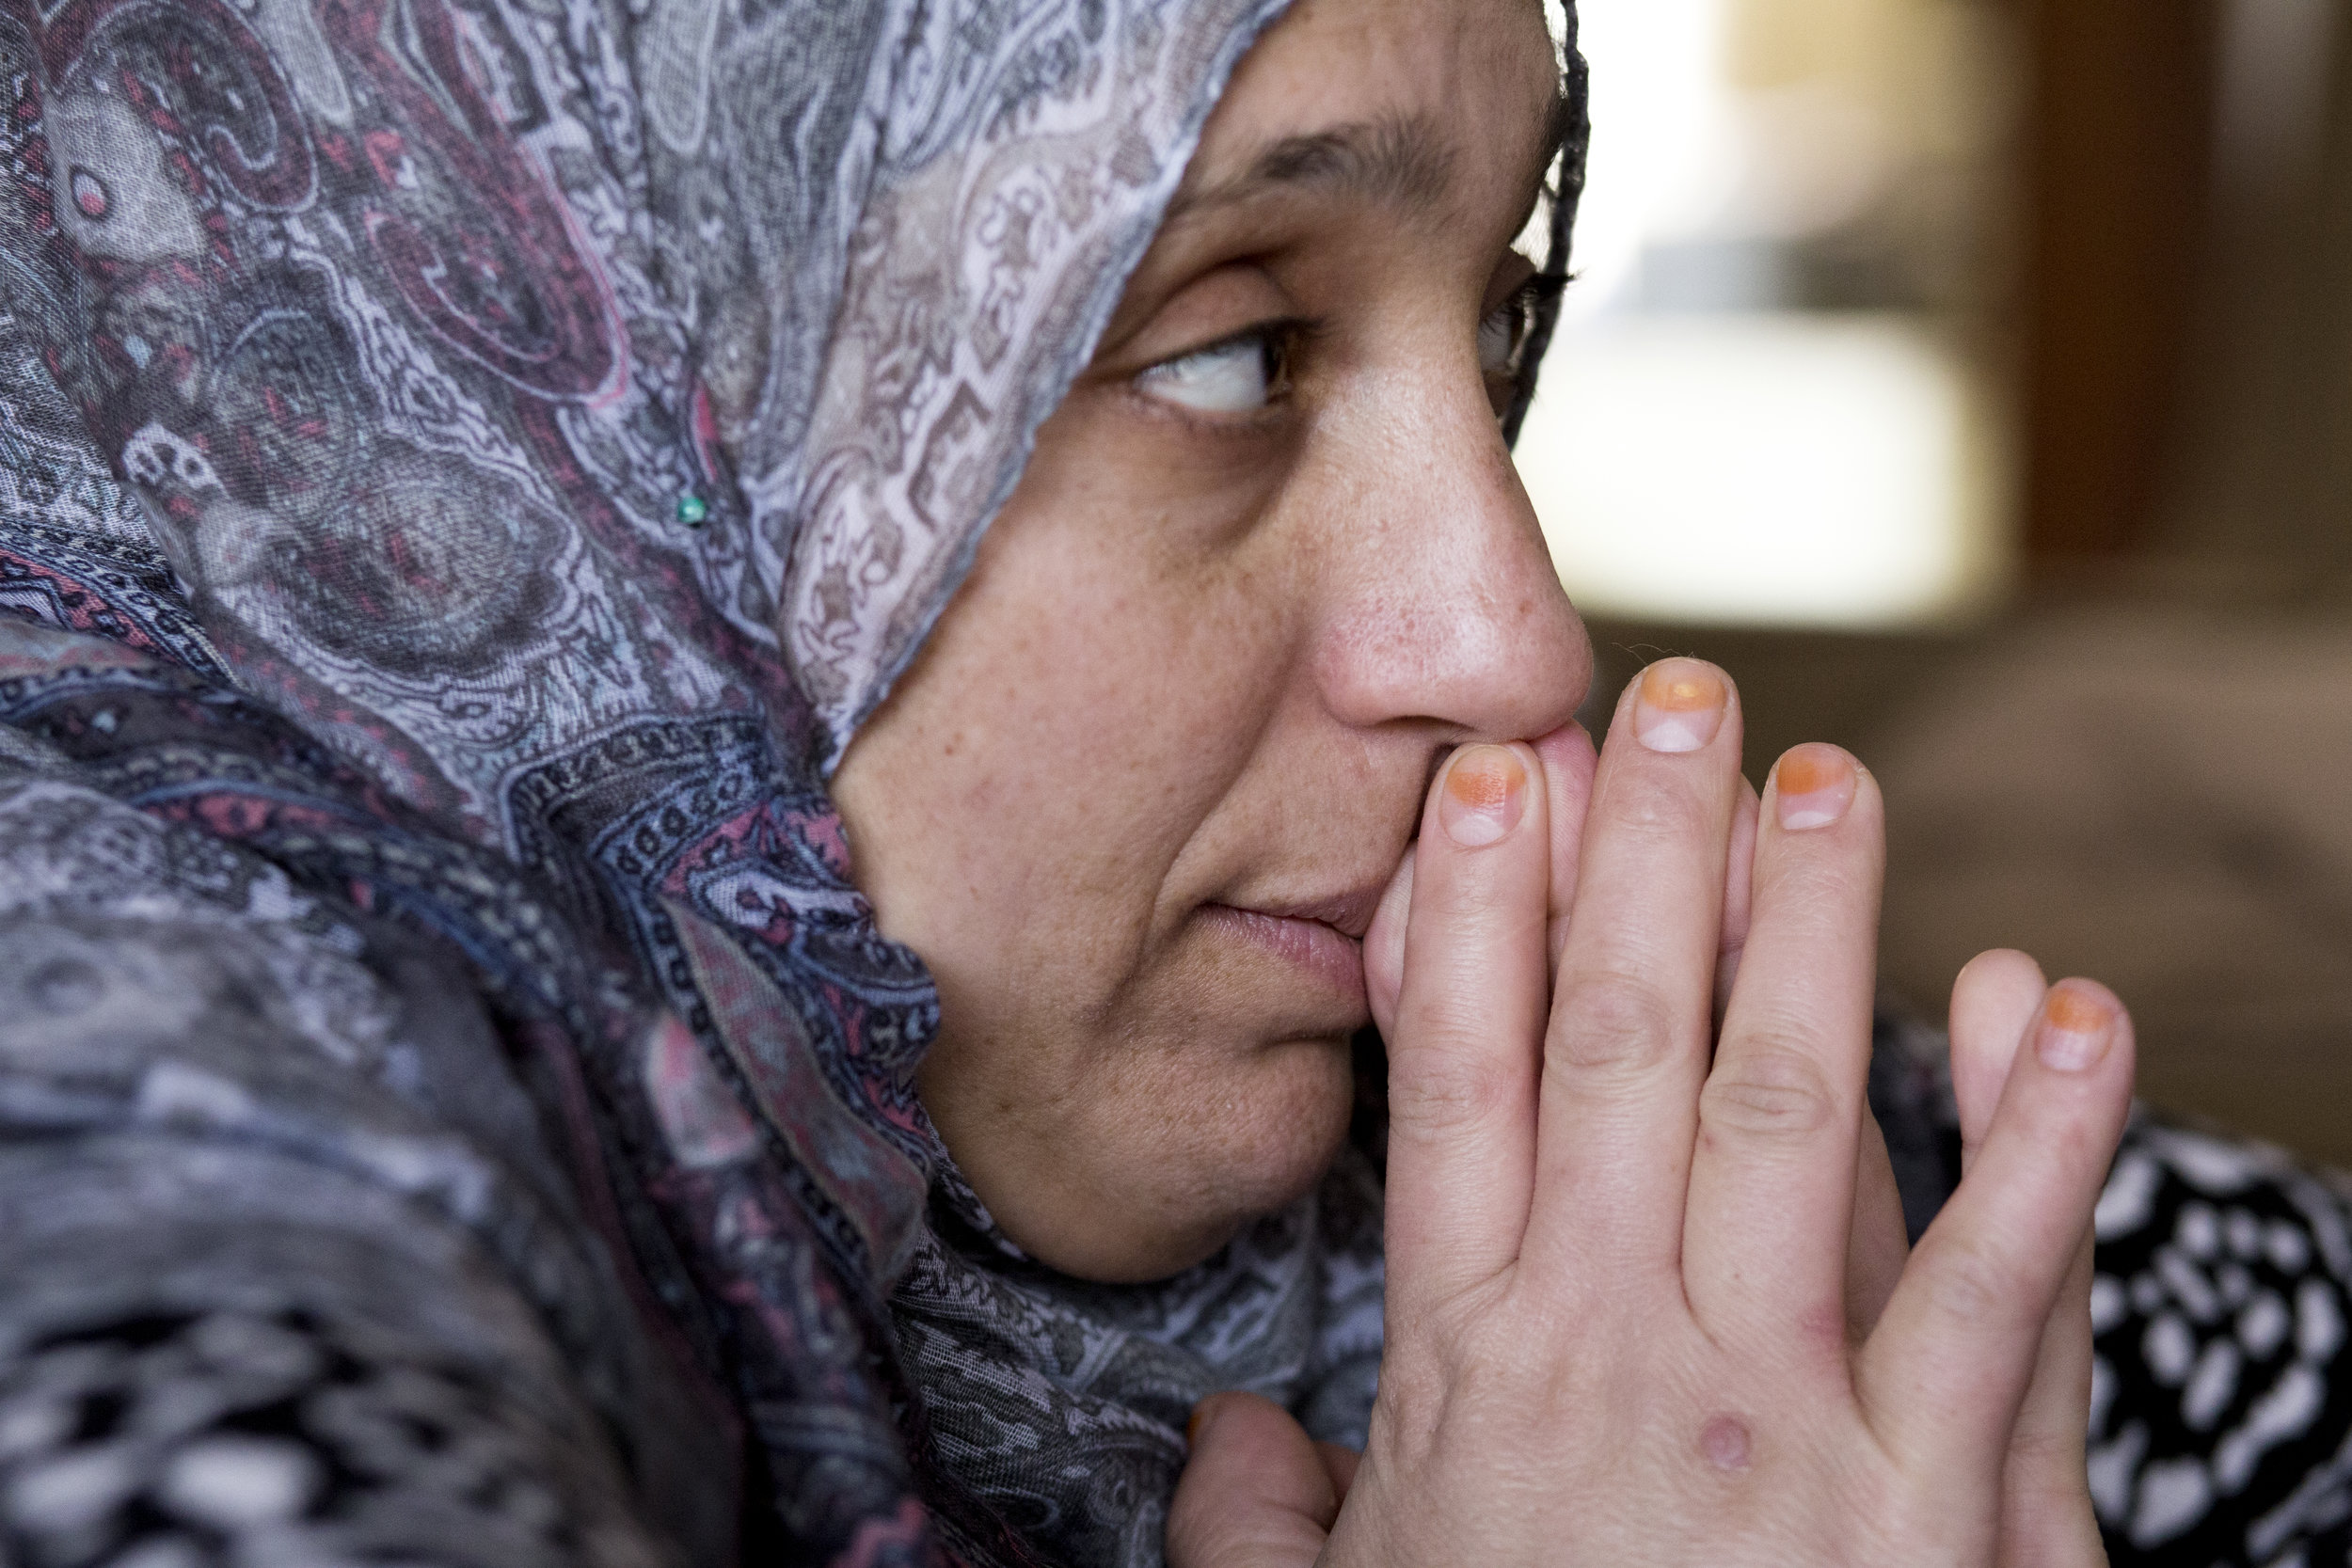 Mariam waits nervously to break the news to her husband about failing the drivers permit exam as her and Runah discuss options of retesting.